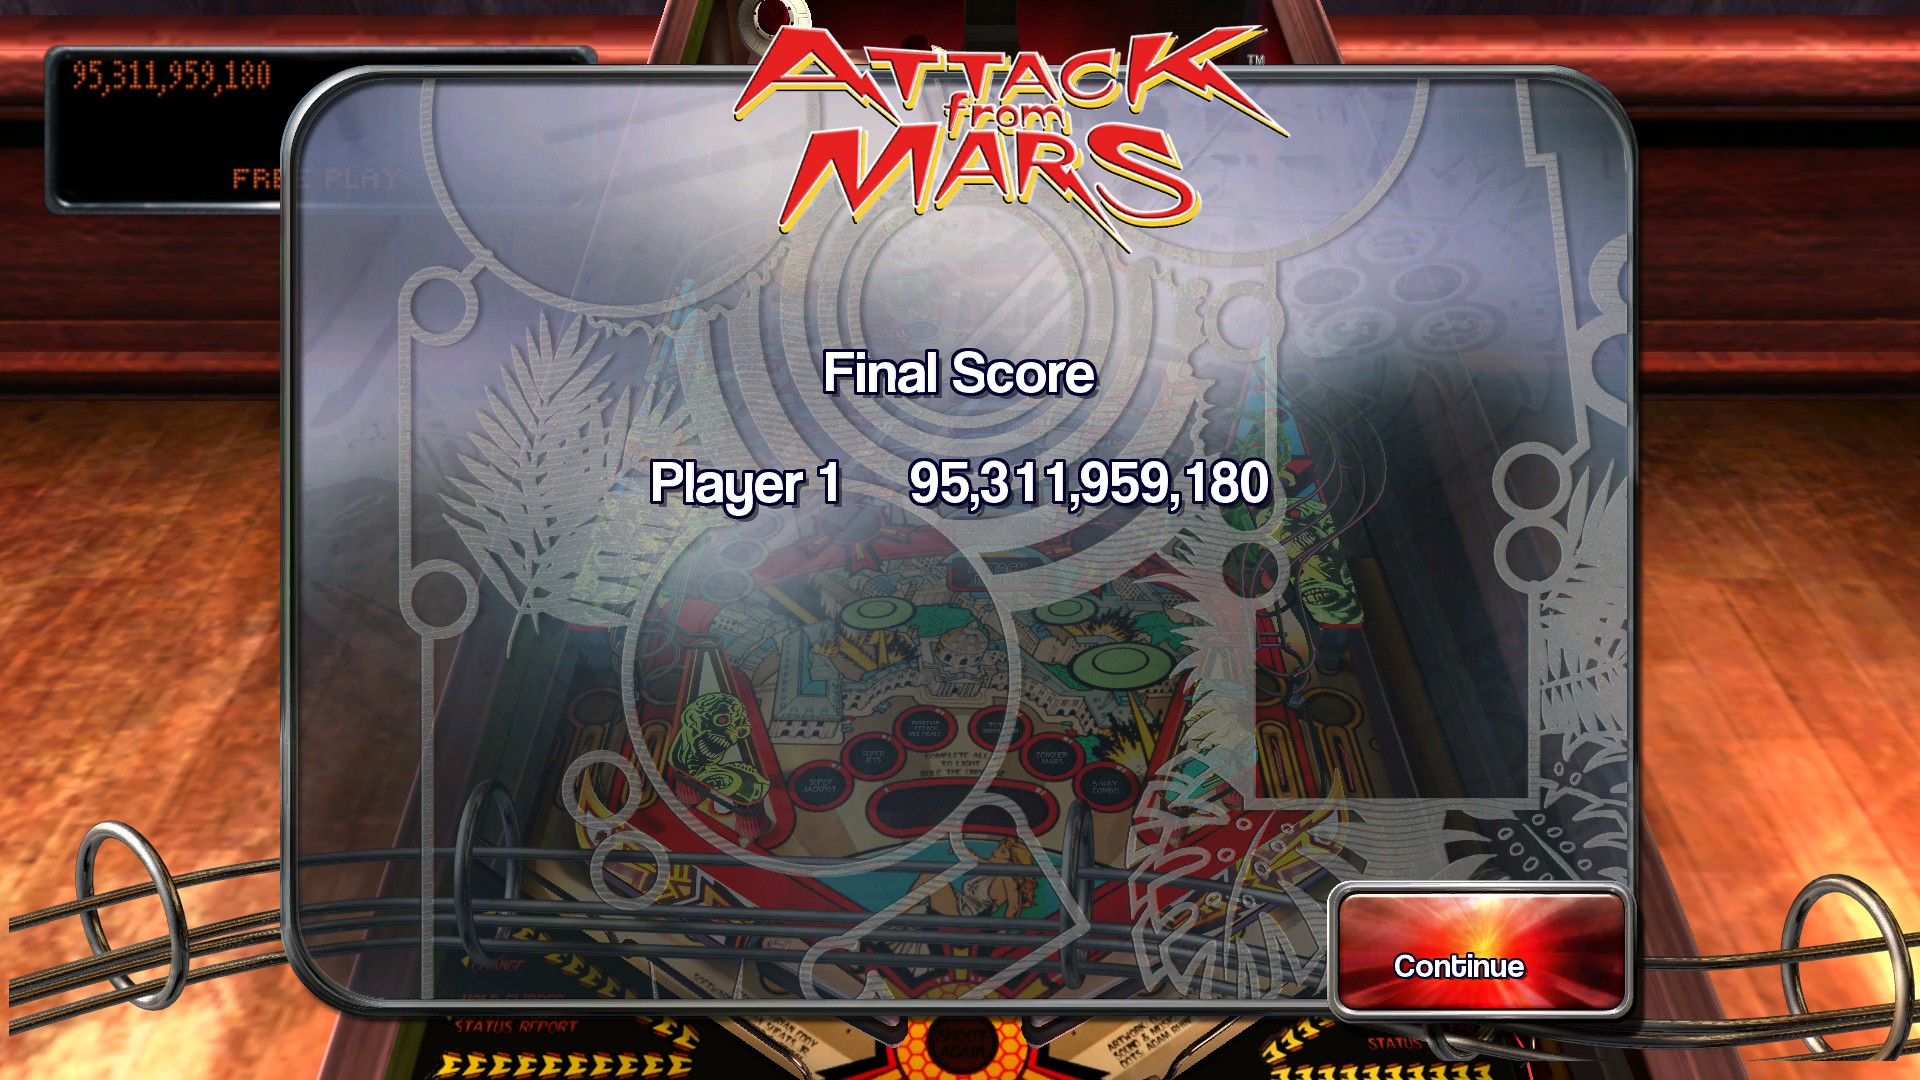 TheTrickster: Pinball Arcade: Attack From Mars (PC) 95,311,959,180 points on 2015-11-22 15:42:42